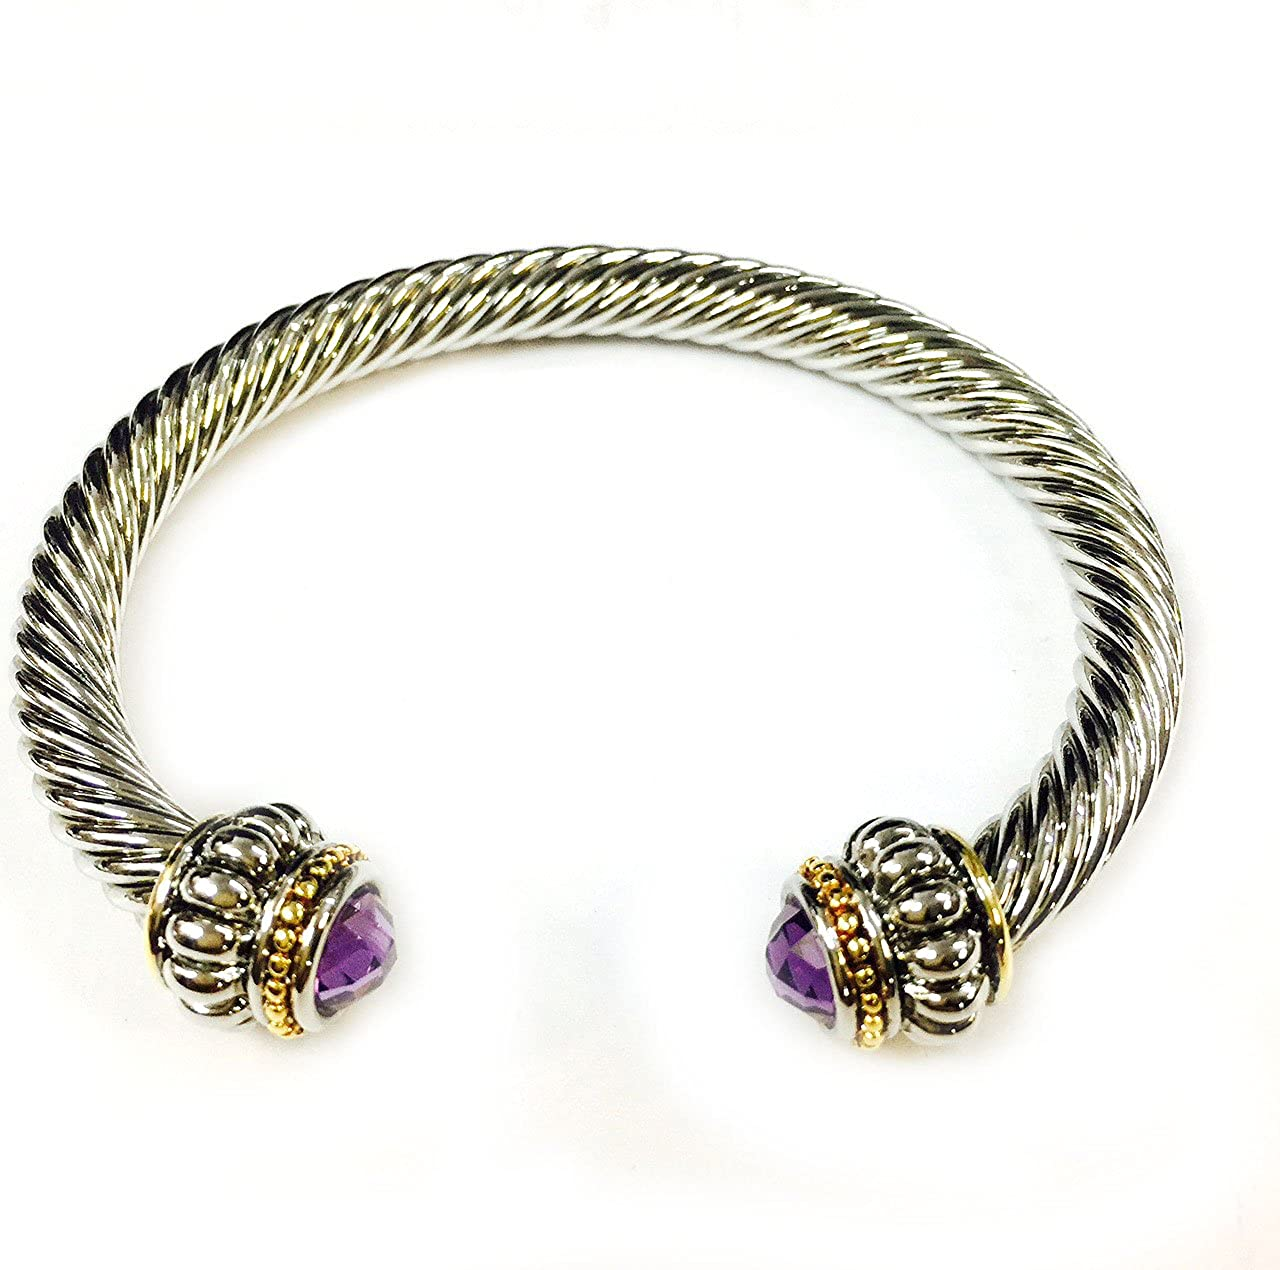 T J Magic Two Tone 7mm Rope Twist Wire Rhodium Plated Bangle Bracelet with Amethyst Cubic Zirconia Crystal Stone